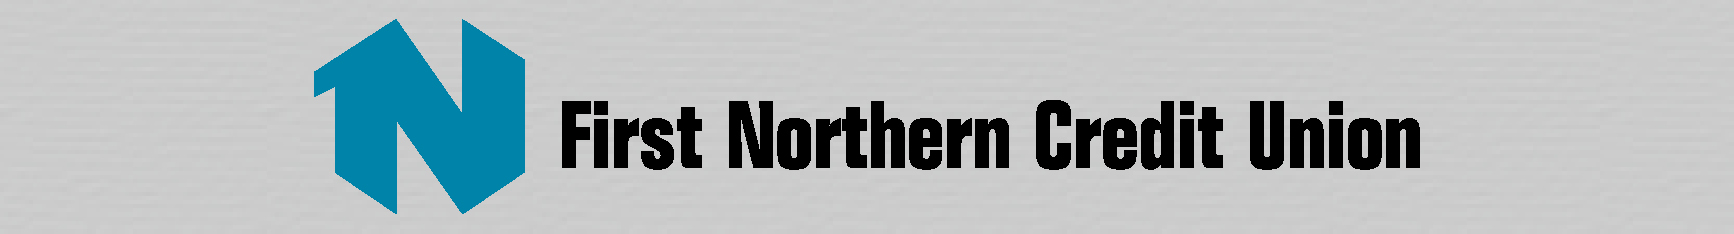 First Northern Credit Union